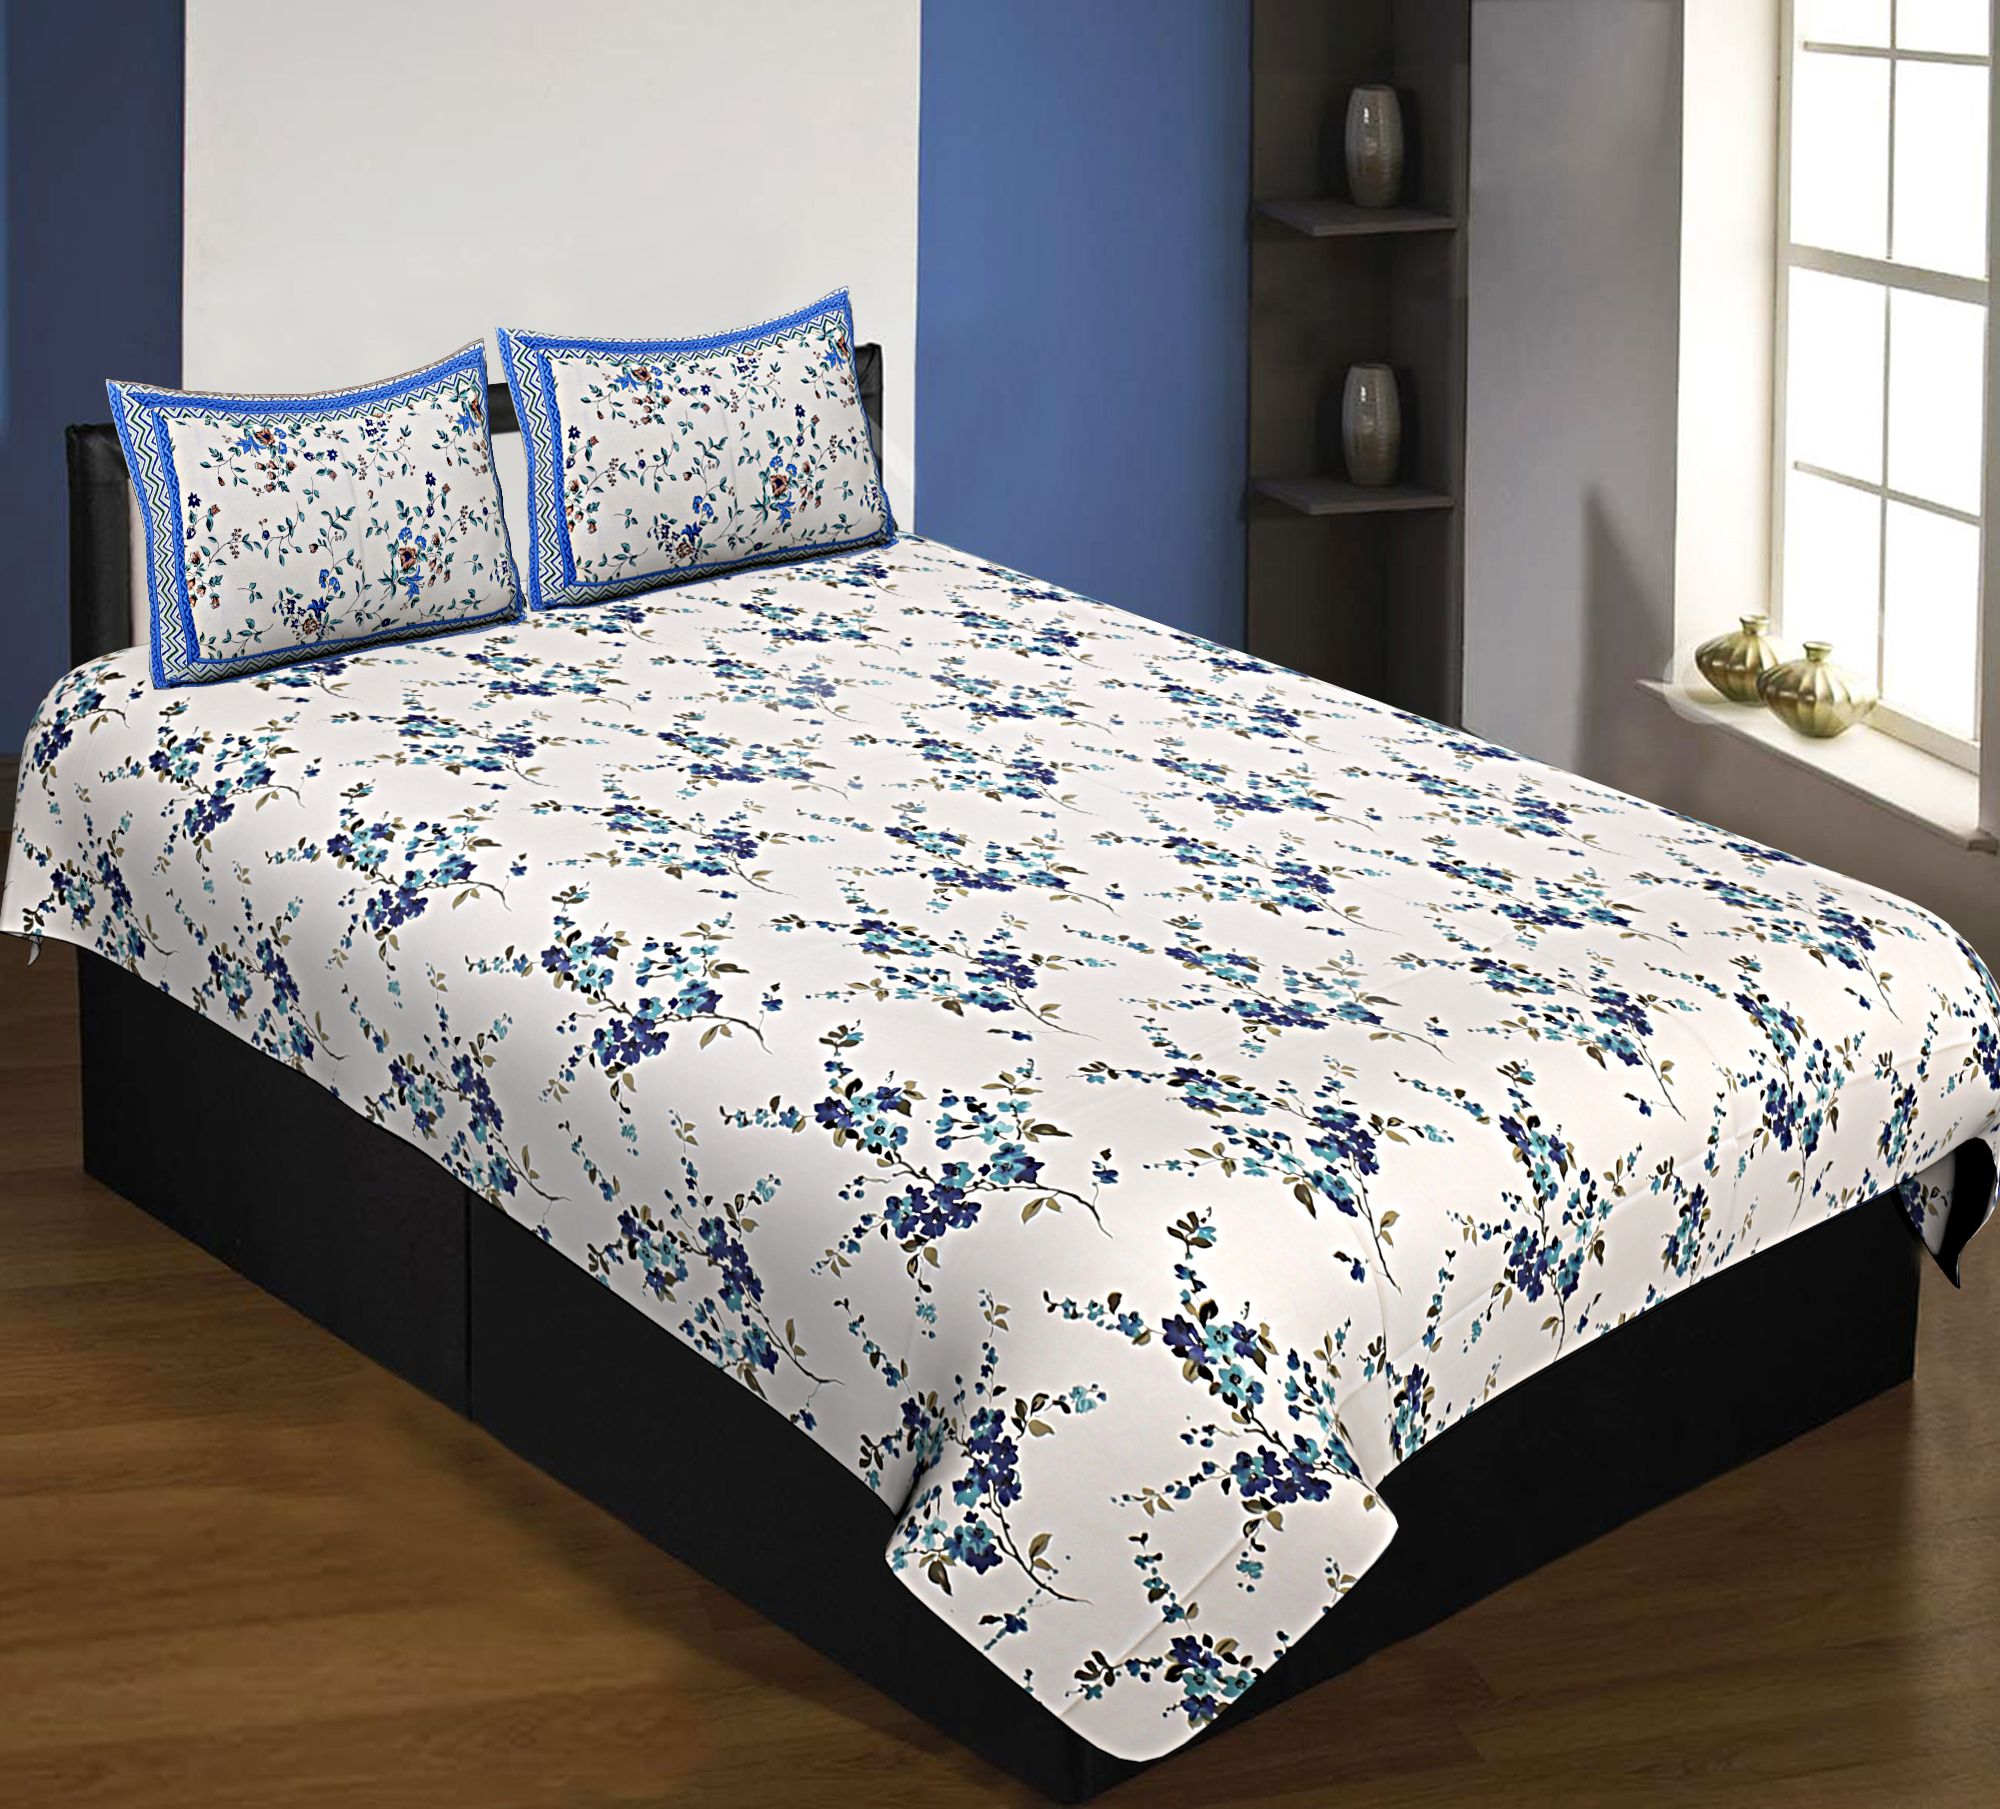 Pure Cotton 240 TC Single Bedsheet in blue motif floral print taxable